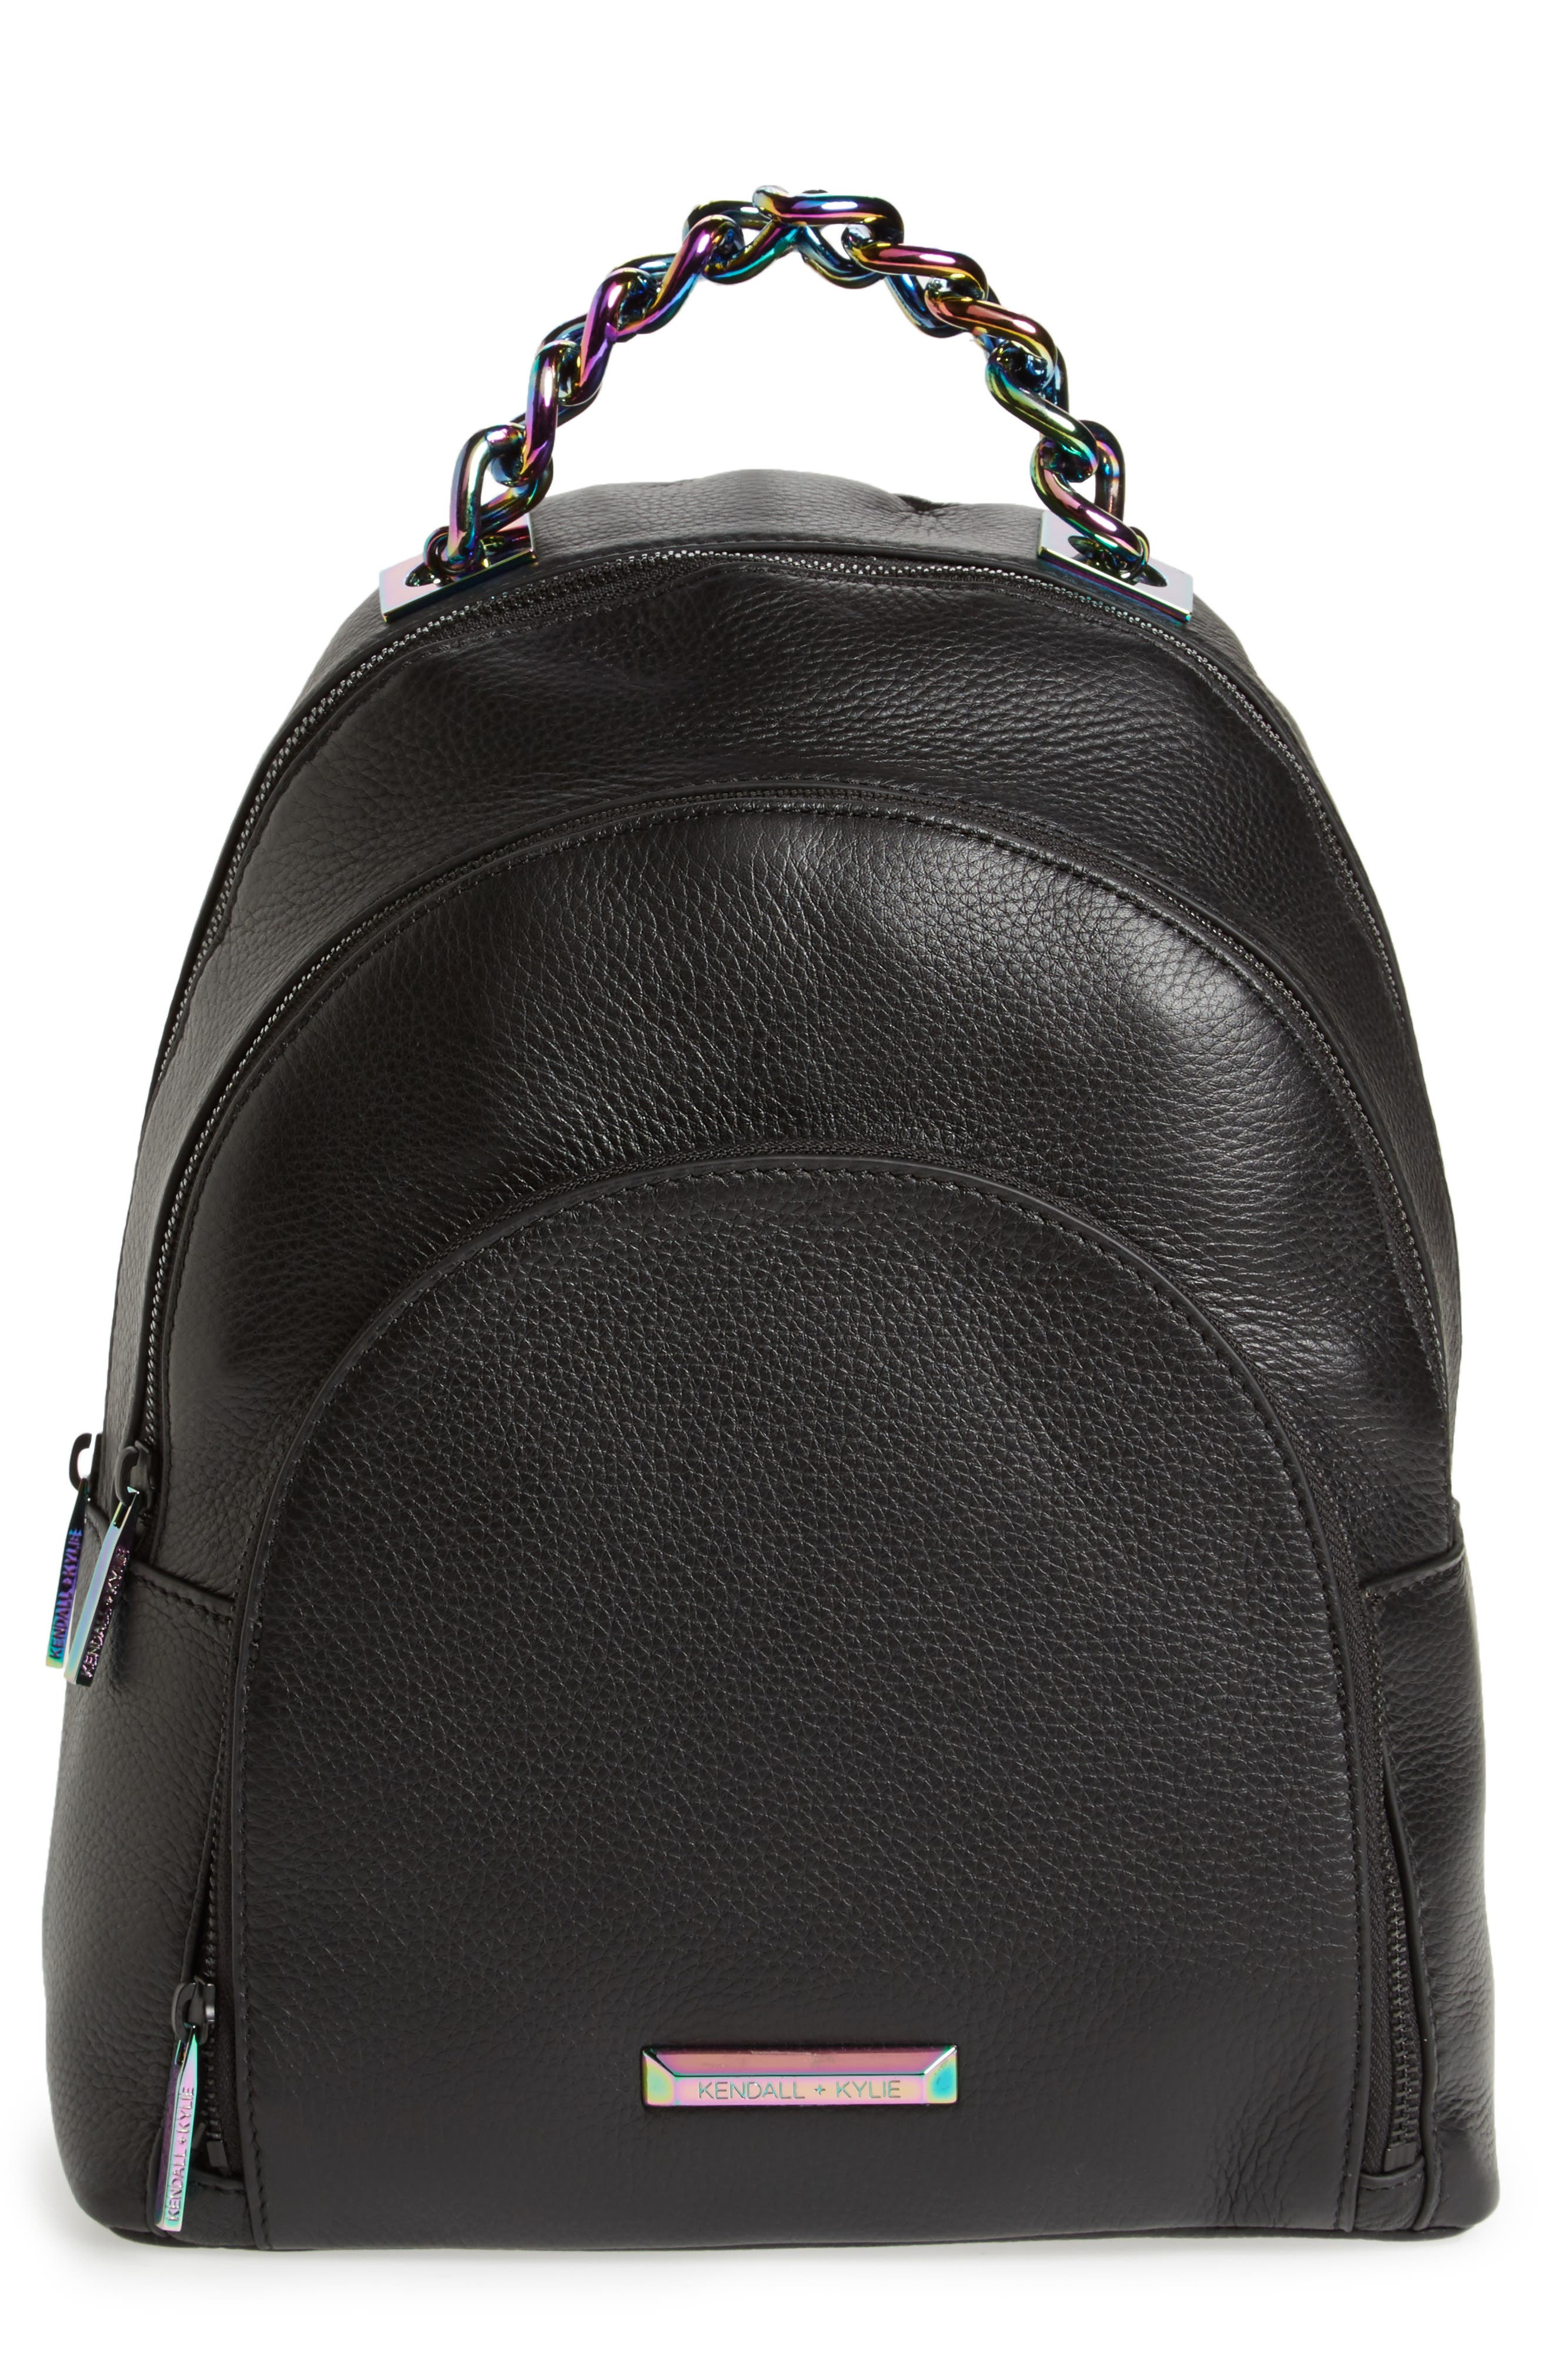 Sloane Iridescent Hardware Leather Backpack,                         Main,                         color,